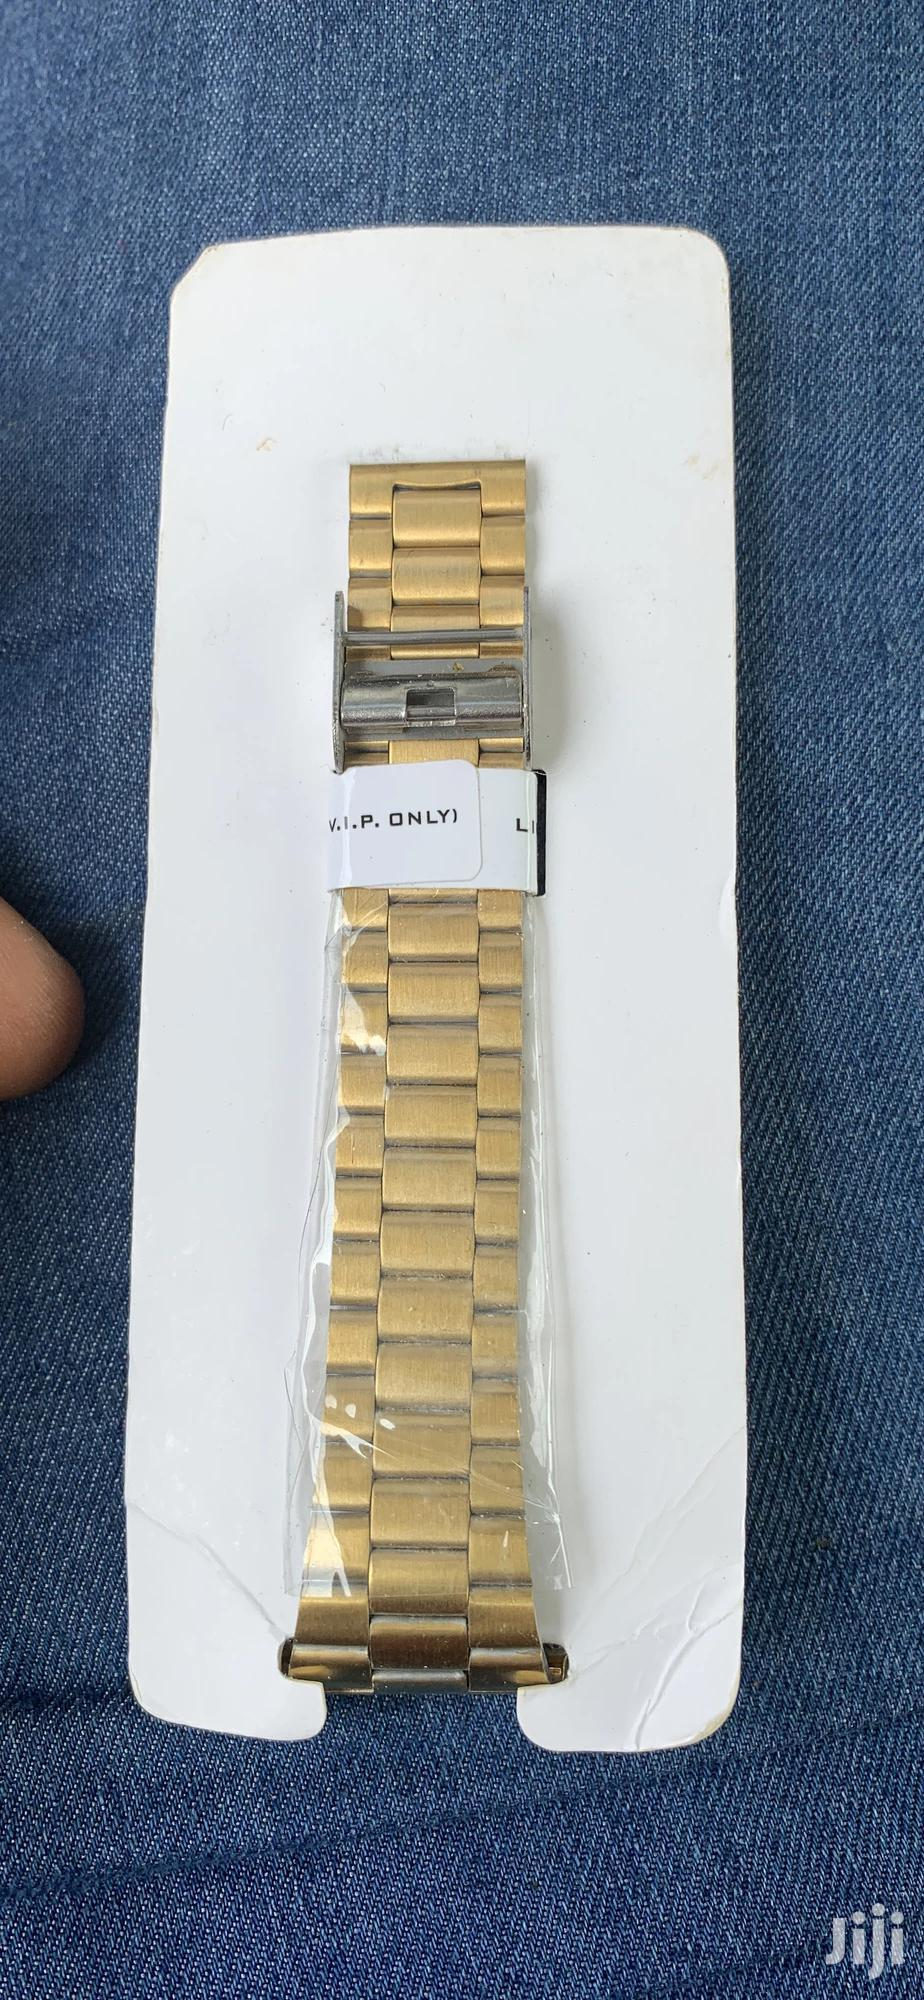 Casio Watch Gold | Watches for sale in Accra Metropolitan, Greater Accra, Ghana